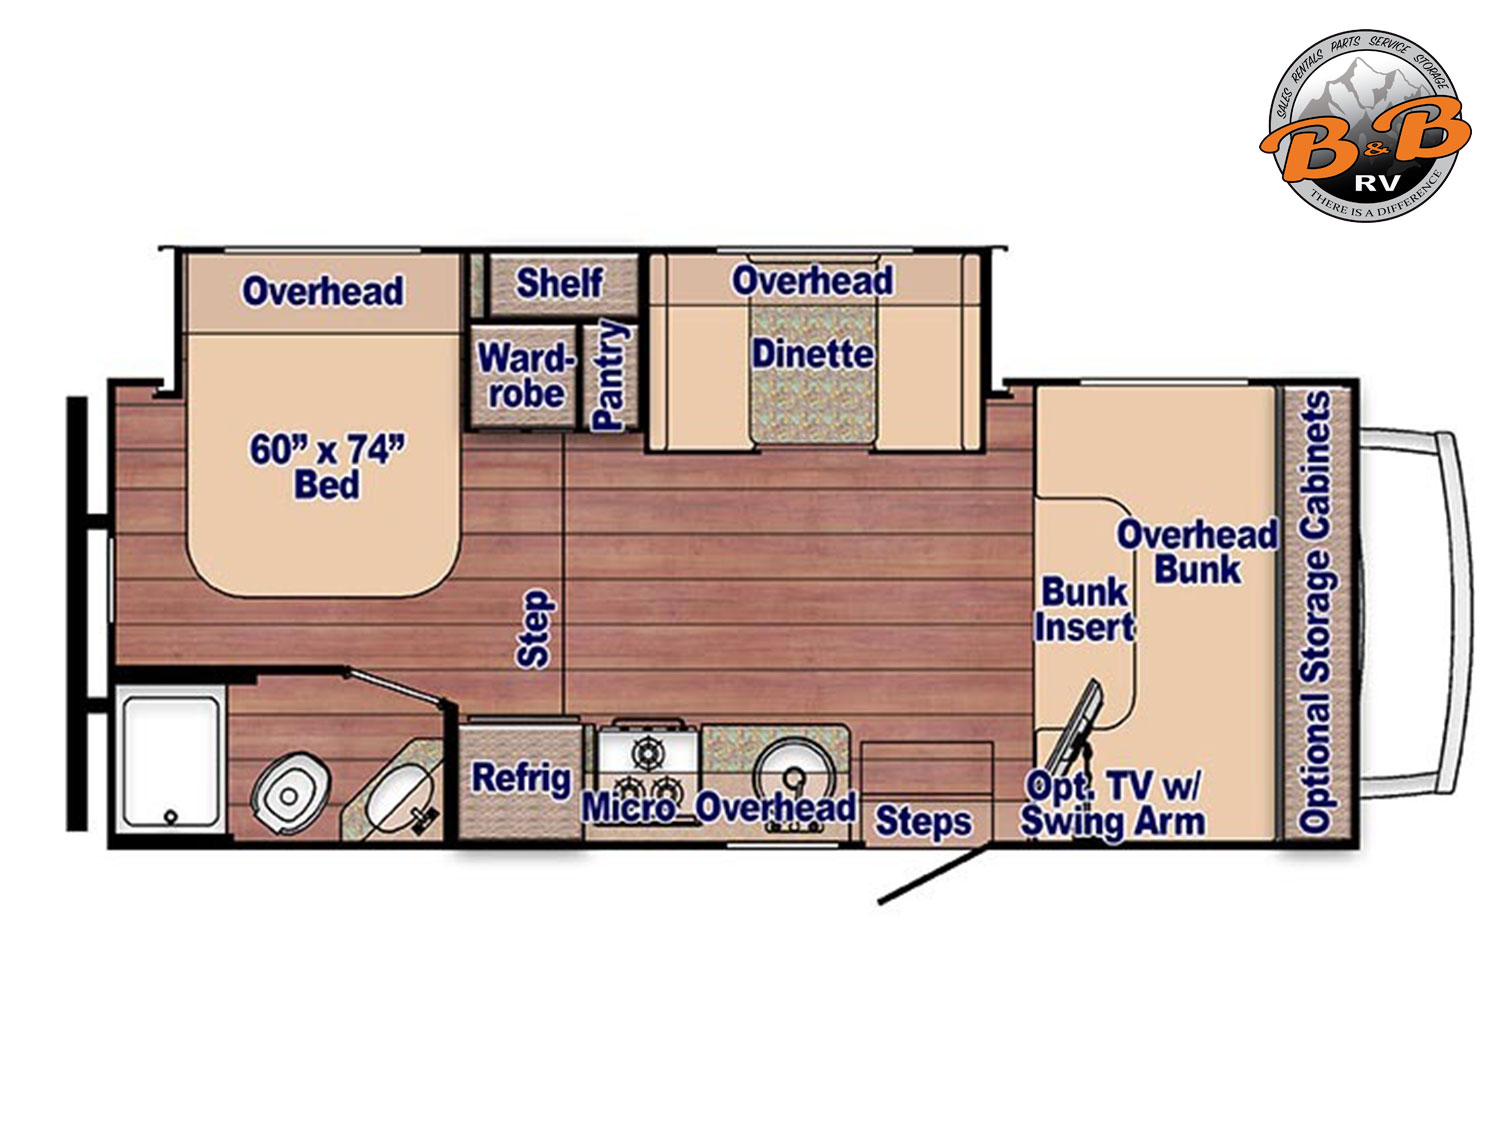 2020 Gulf Stream Conquest 6245 Floorplan